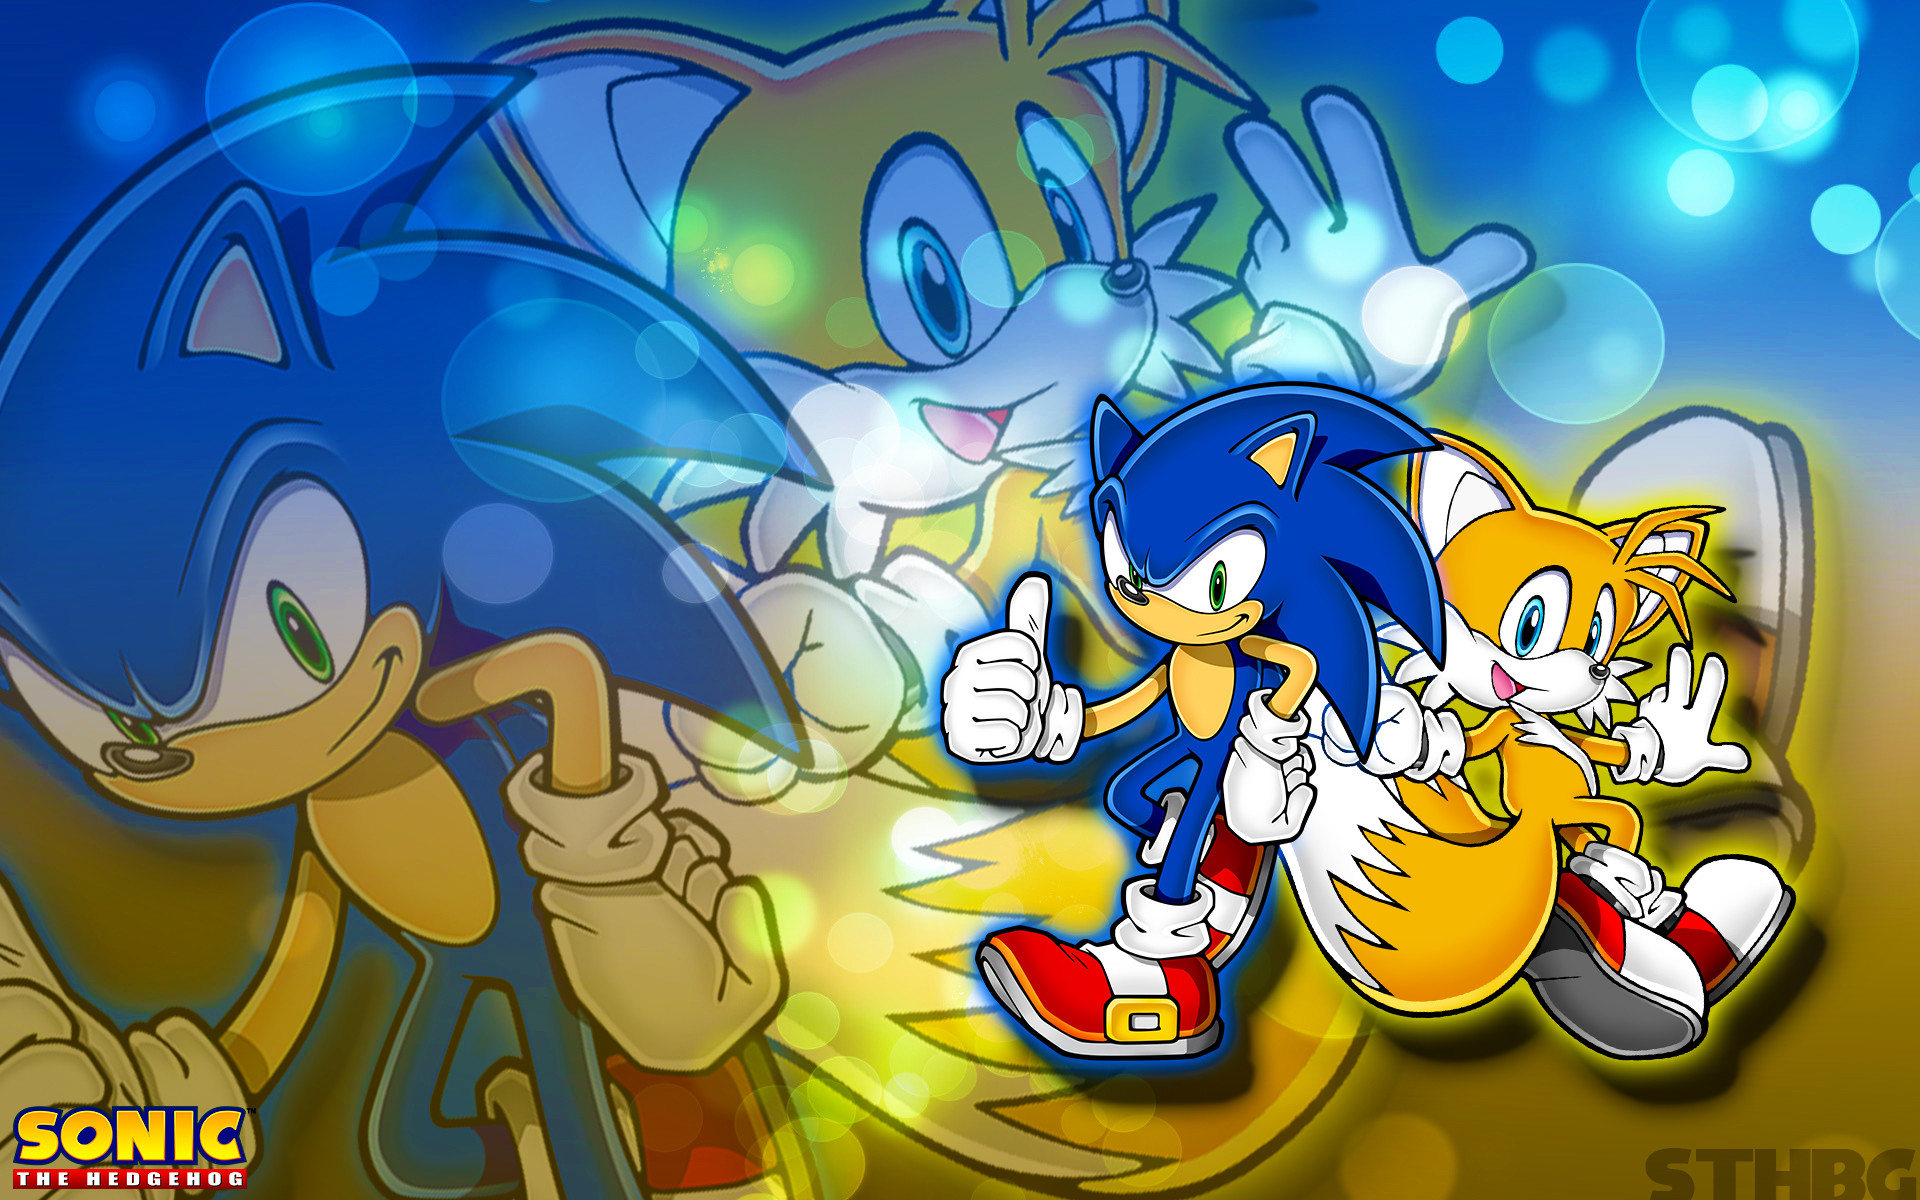 Sonic And Tails Wallpaper by SonicTheHedgehogBG Sonic And Tails Wallpaper  by SonicTheHedgehogBG